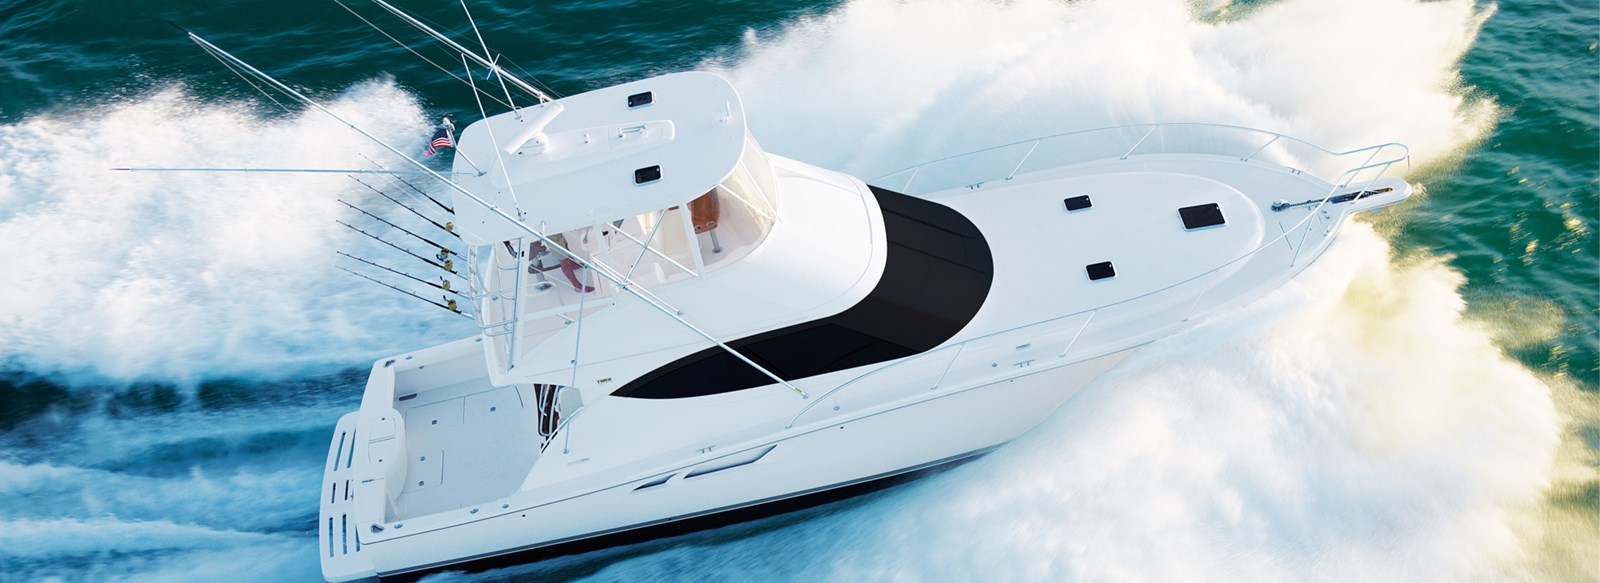 New Tiara 4800 Convertible Yachts For Sale